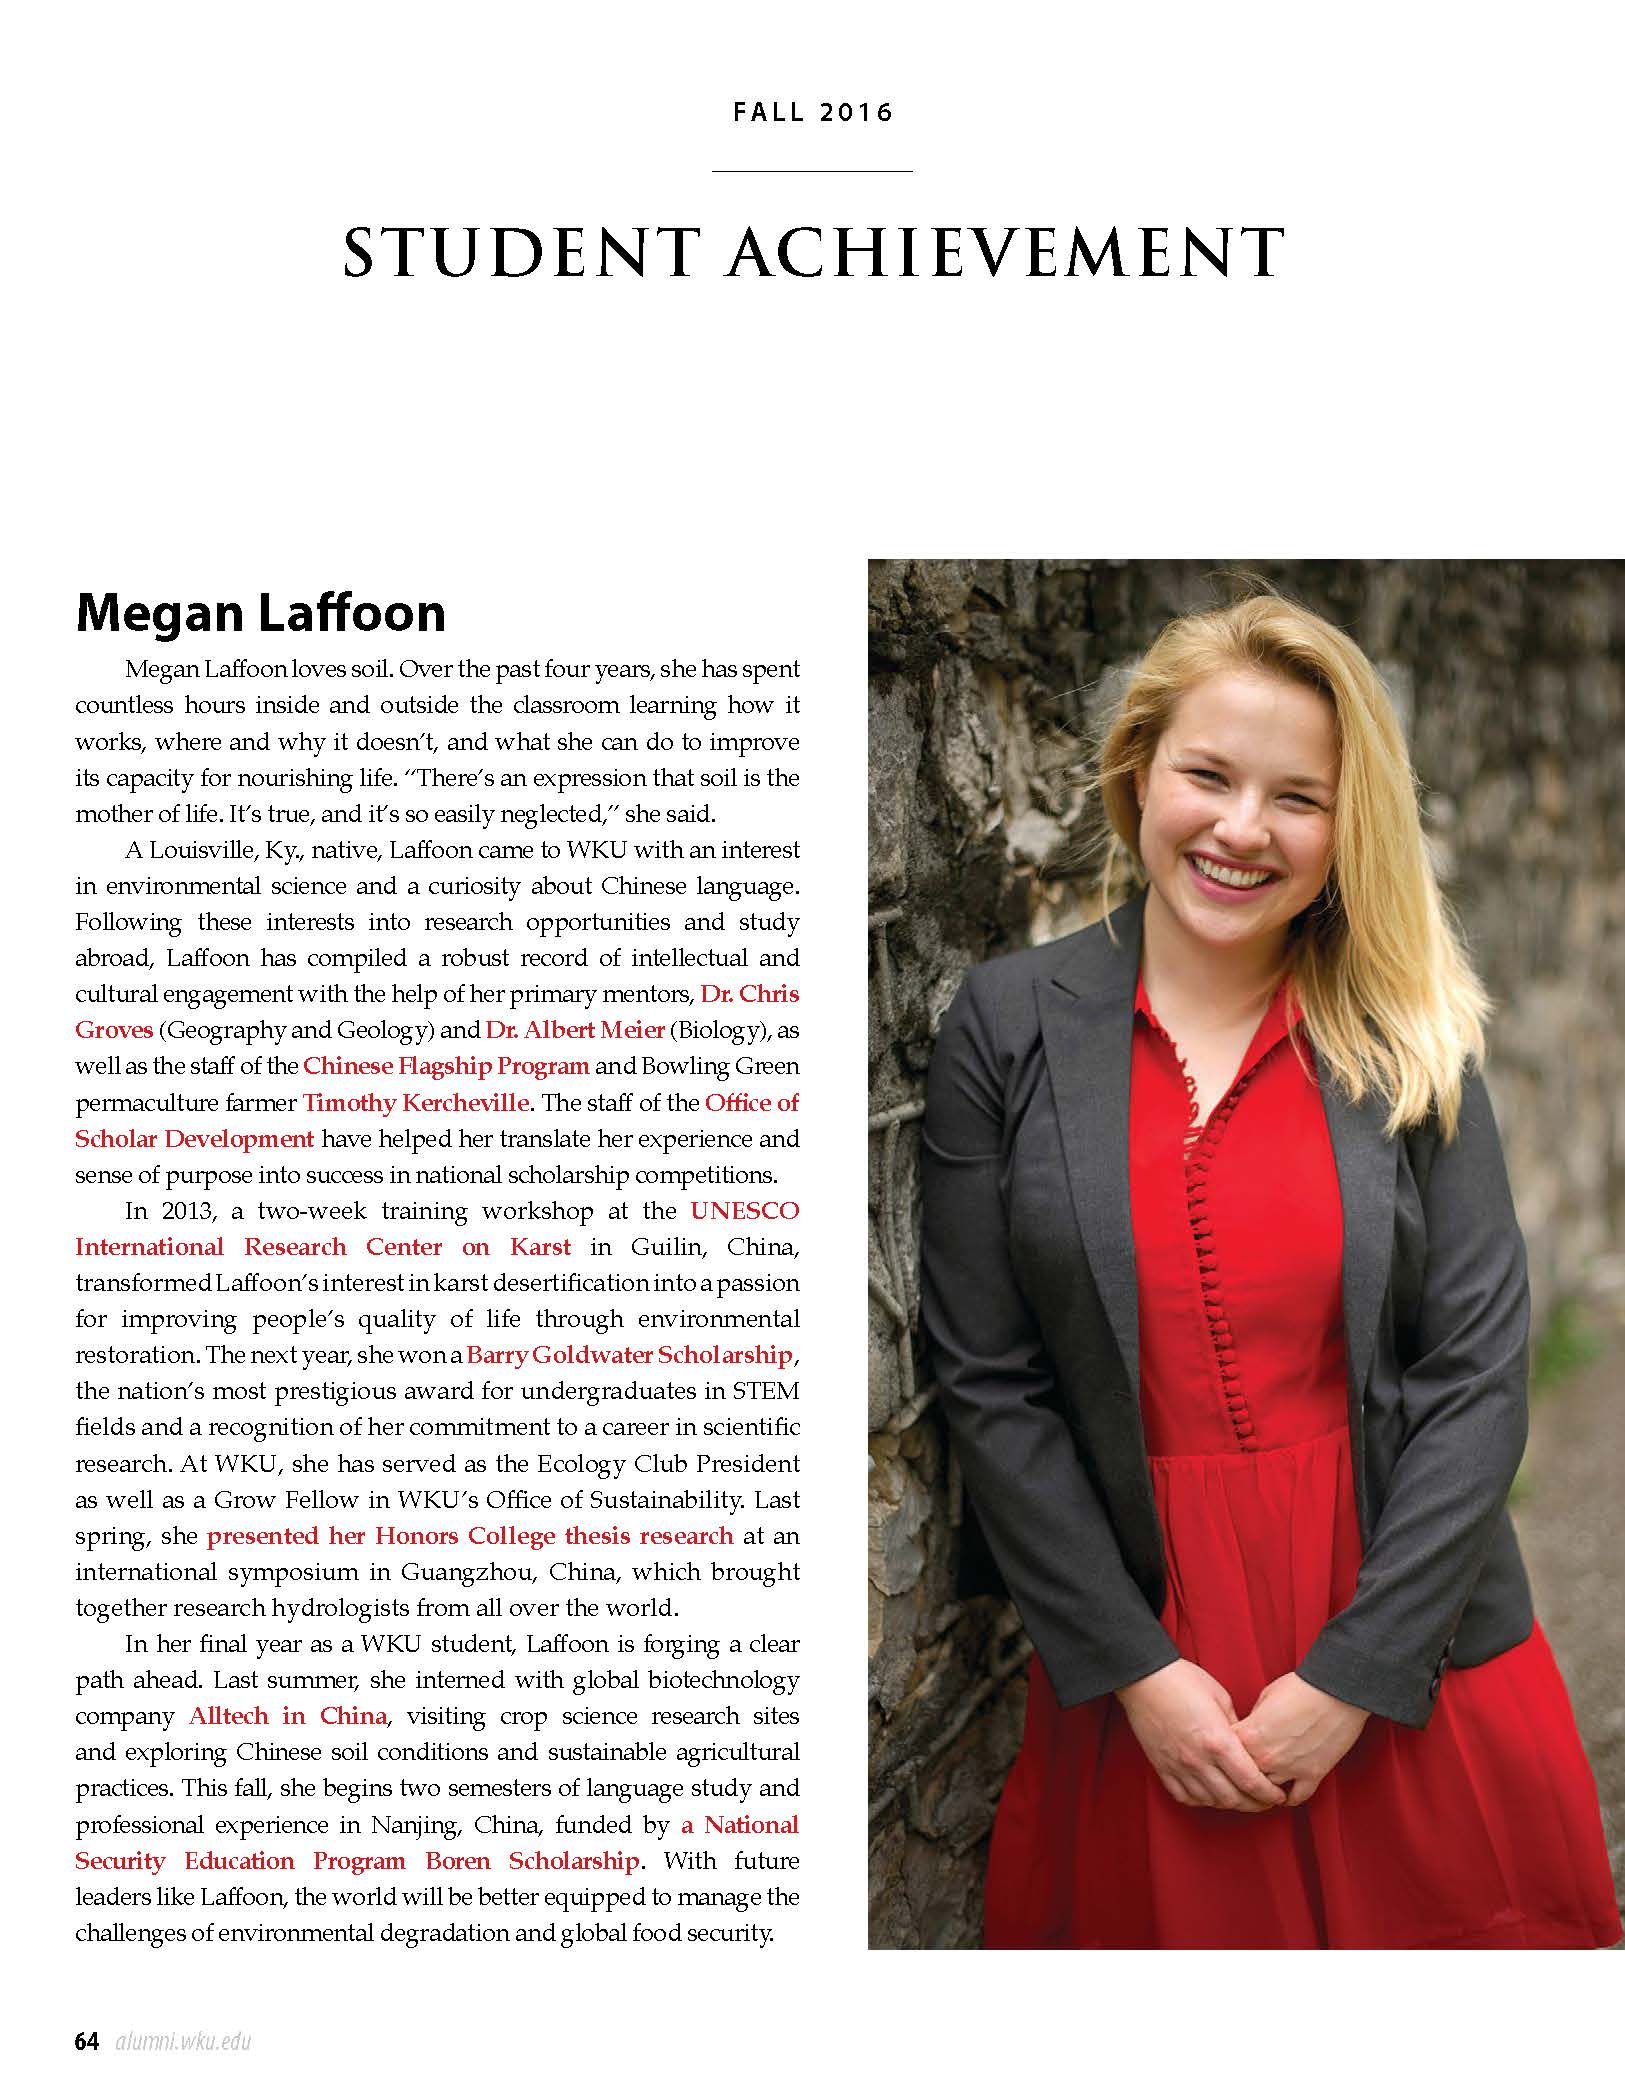 Christian Academy School System | Christian Academy of Louisville | Alumni in the News | Megan Laffoon